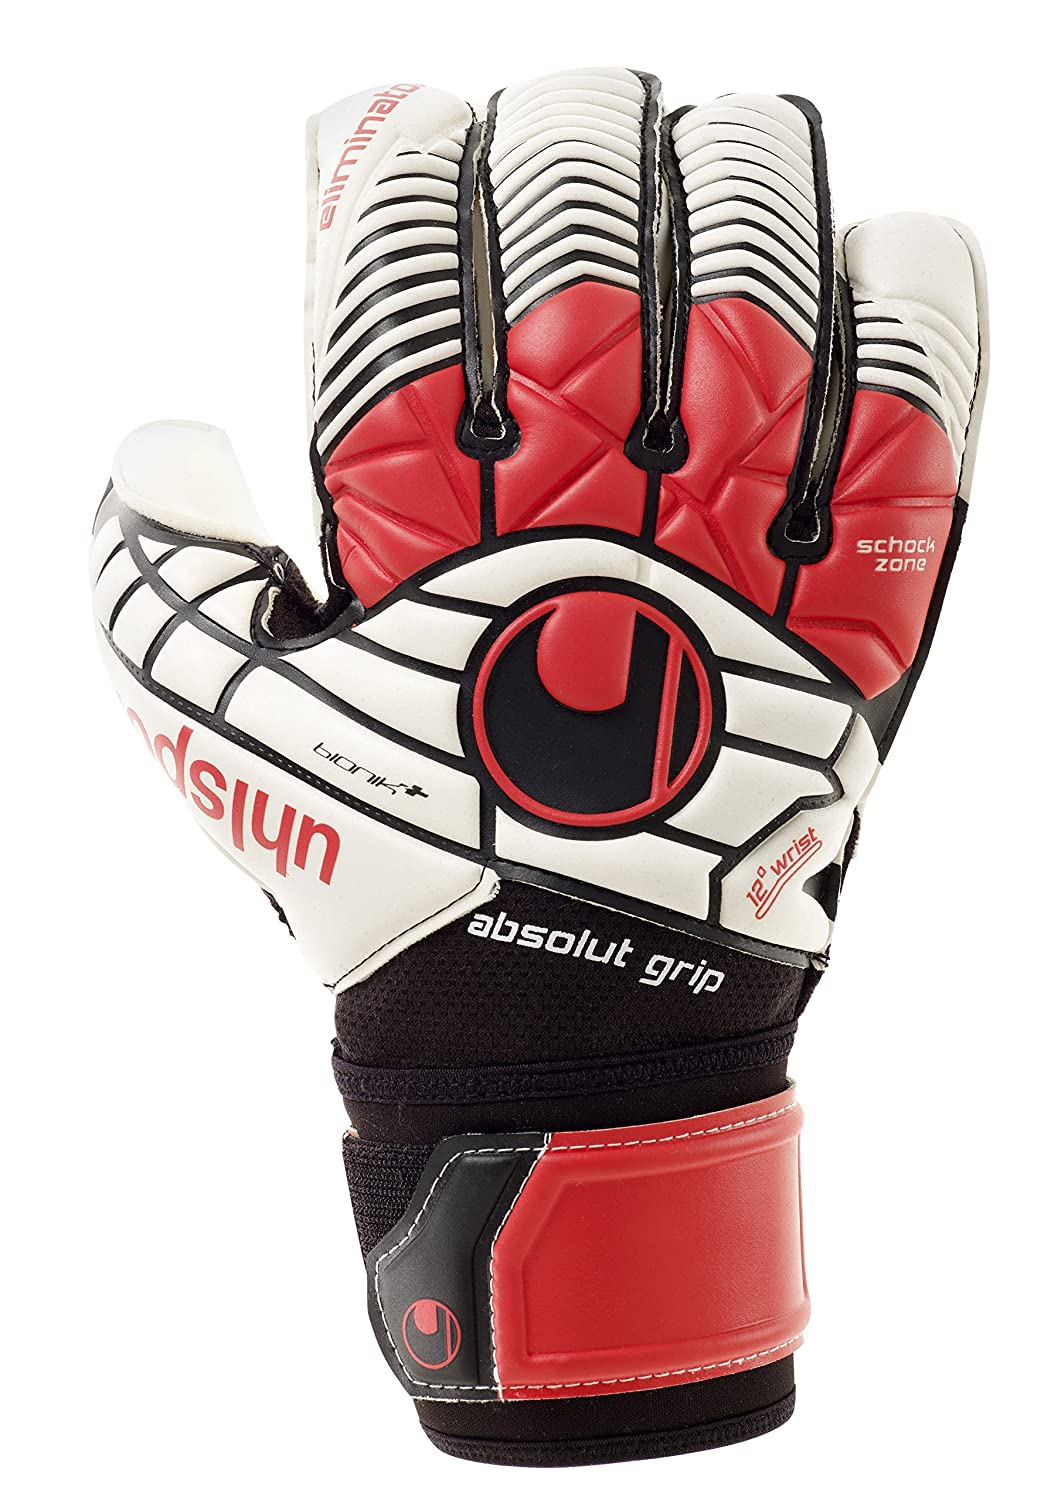 Uhlsport Handschuhe Eliminator ABSOLUTGRIP BIONIK Plus